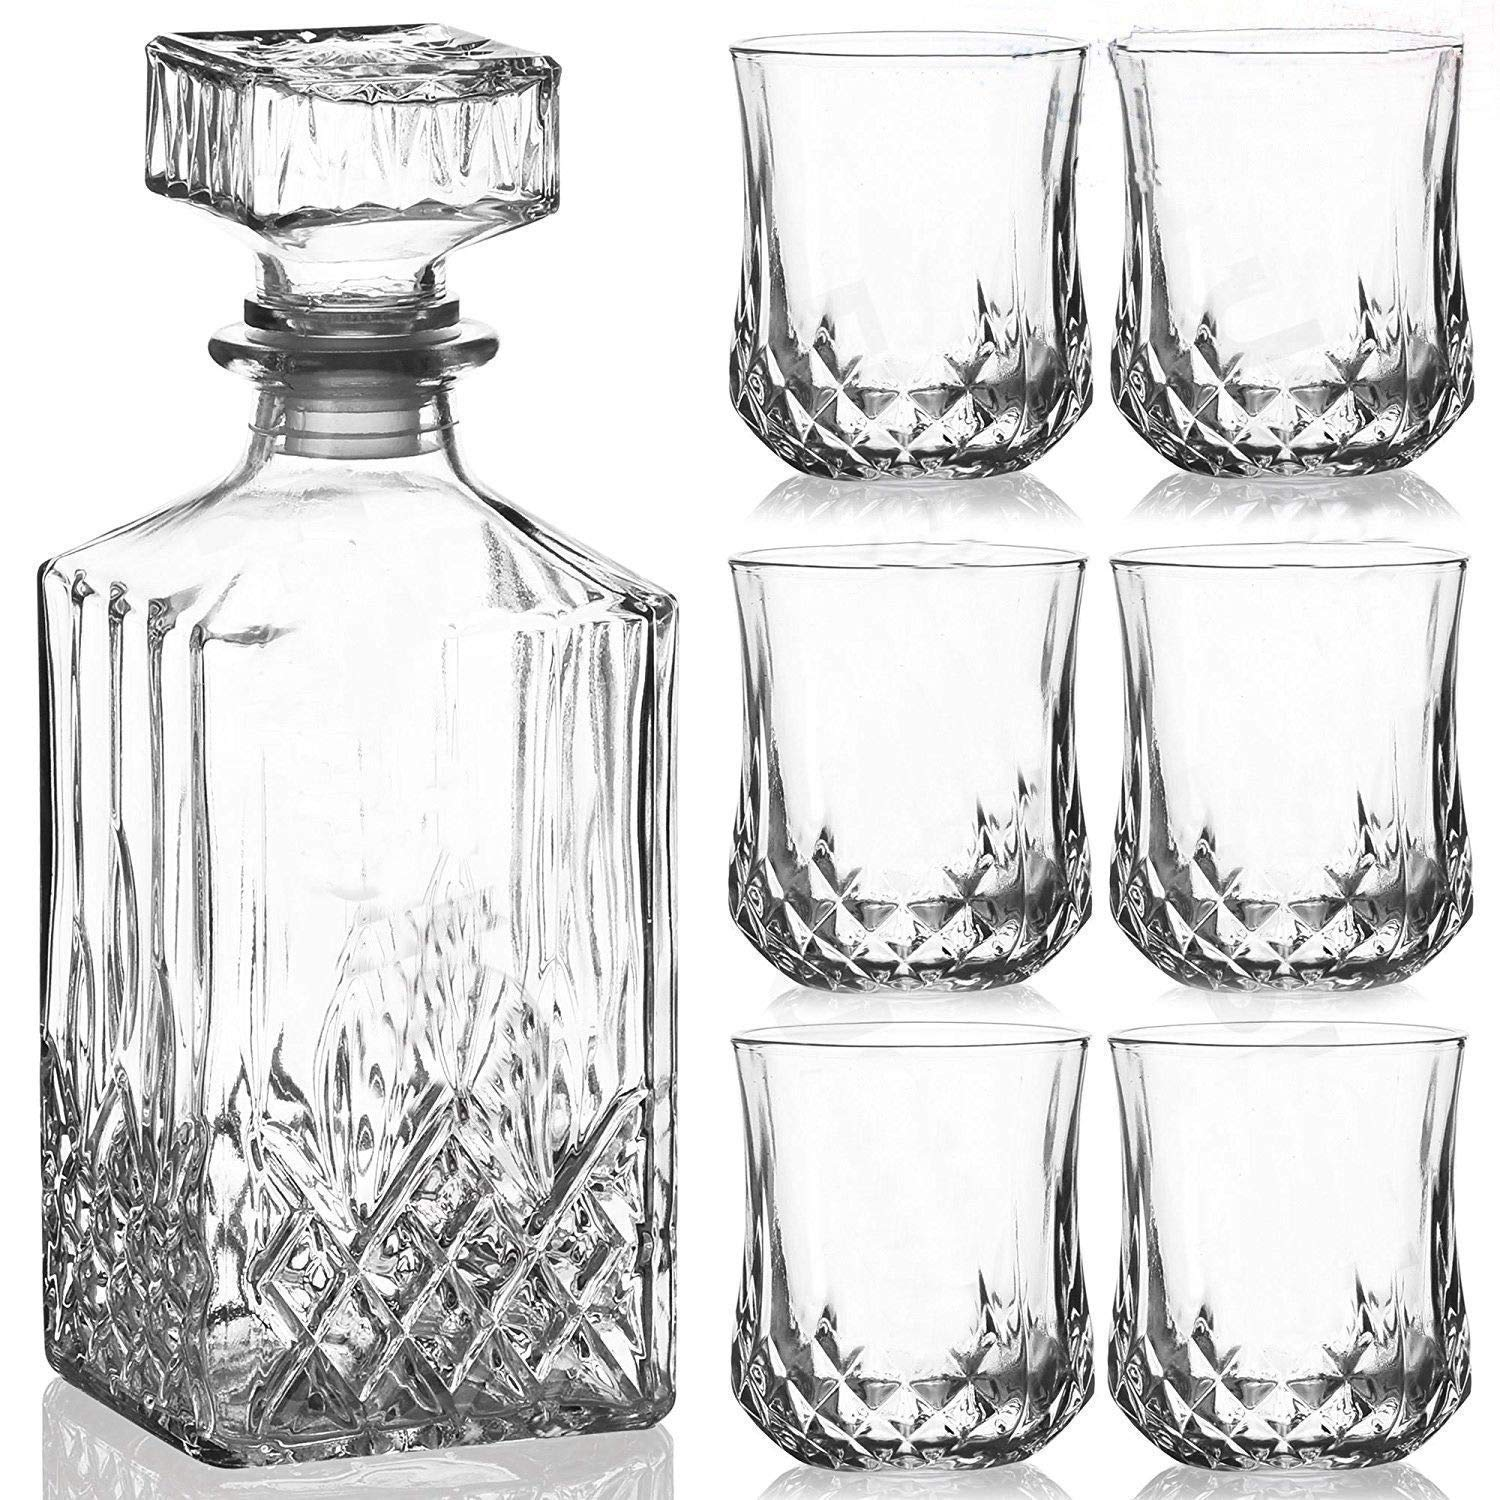 Homezone® Large Vintage Style Cut Glass Whisky Decanter With 6 Glasses. 900ml Etched Glass Drinks Decanter Wine Carafe With Glasses Perfect Home Bar Set For Him/Her.